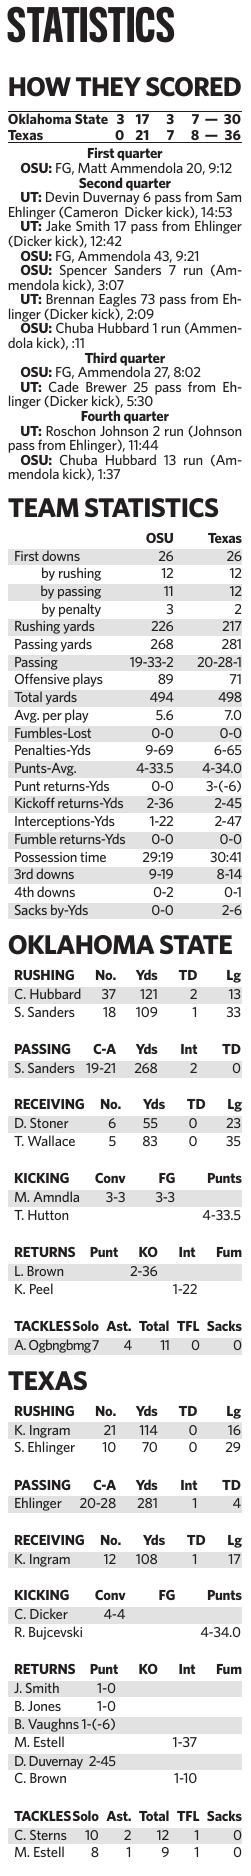 OSU vs. Texas stats